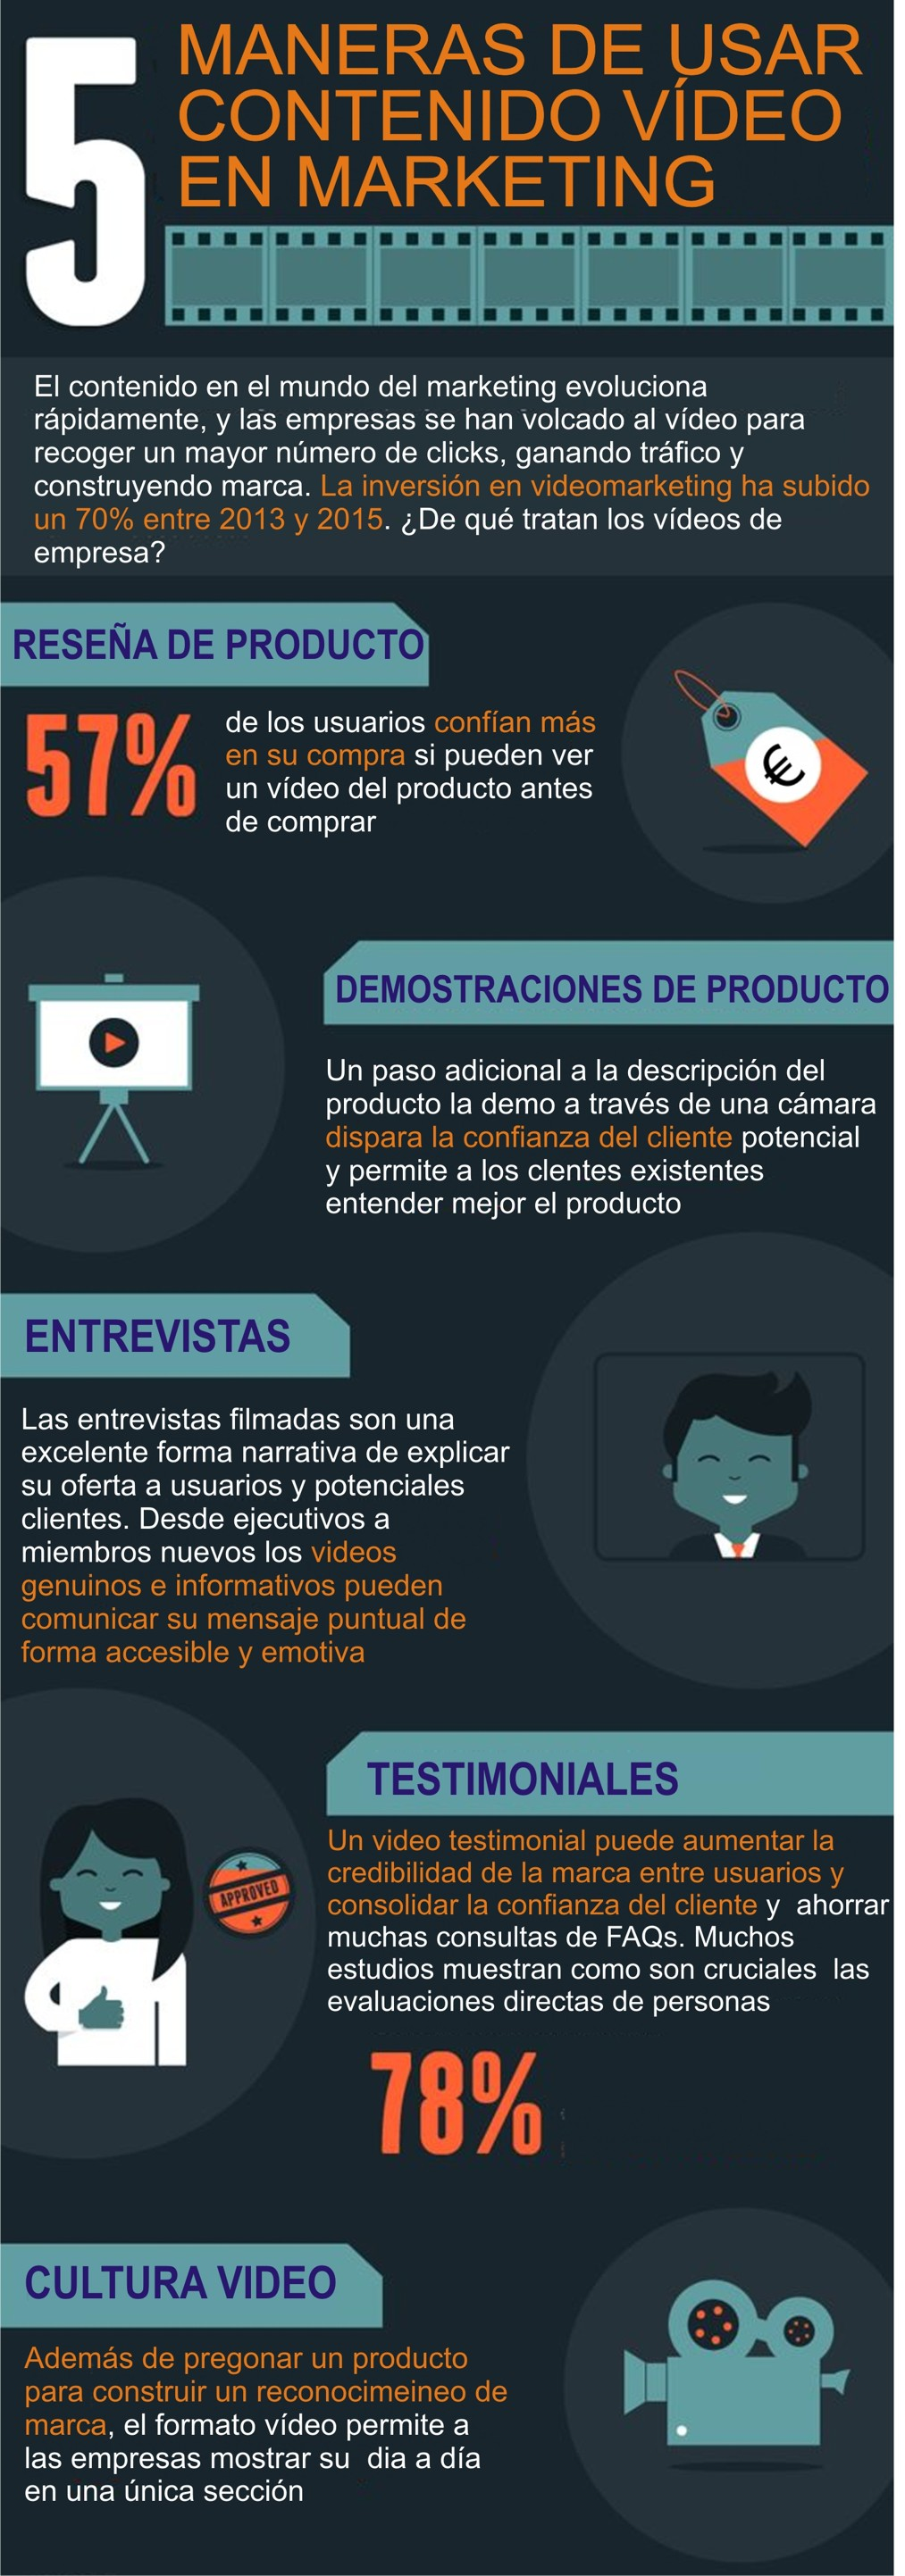 Marketing con video